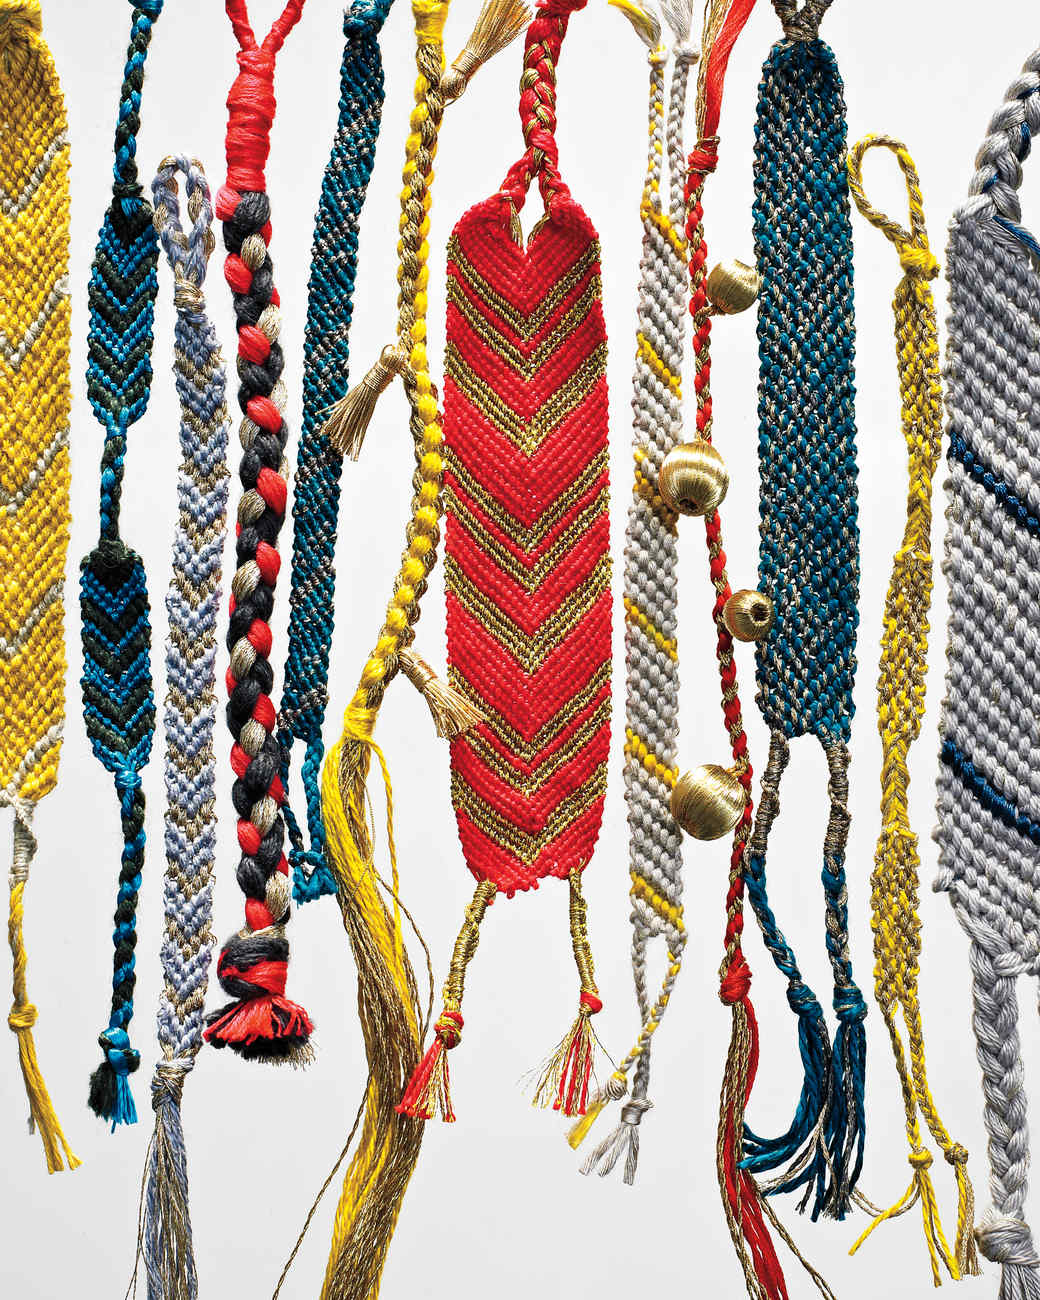 How to make bracelets at home with yarn